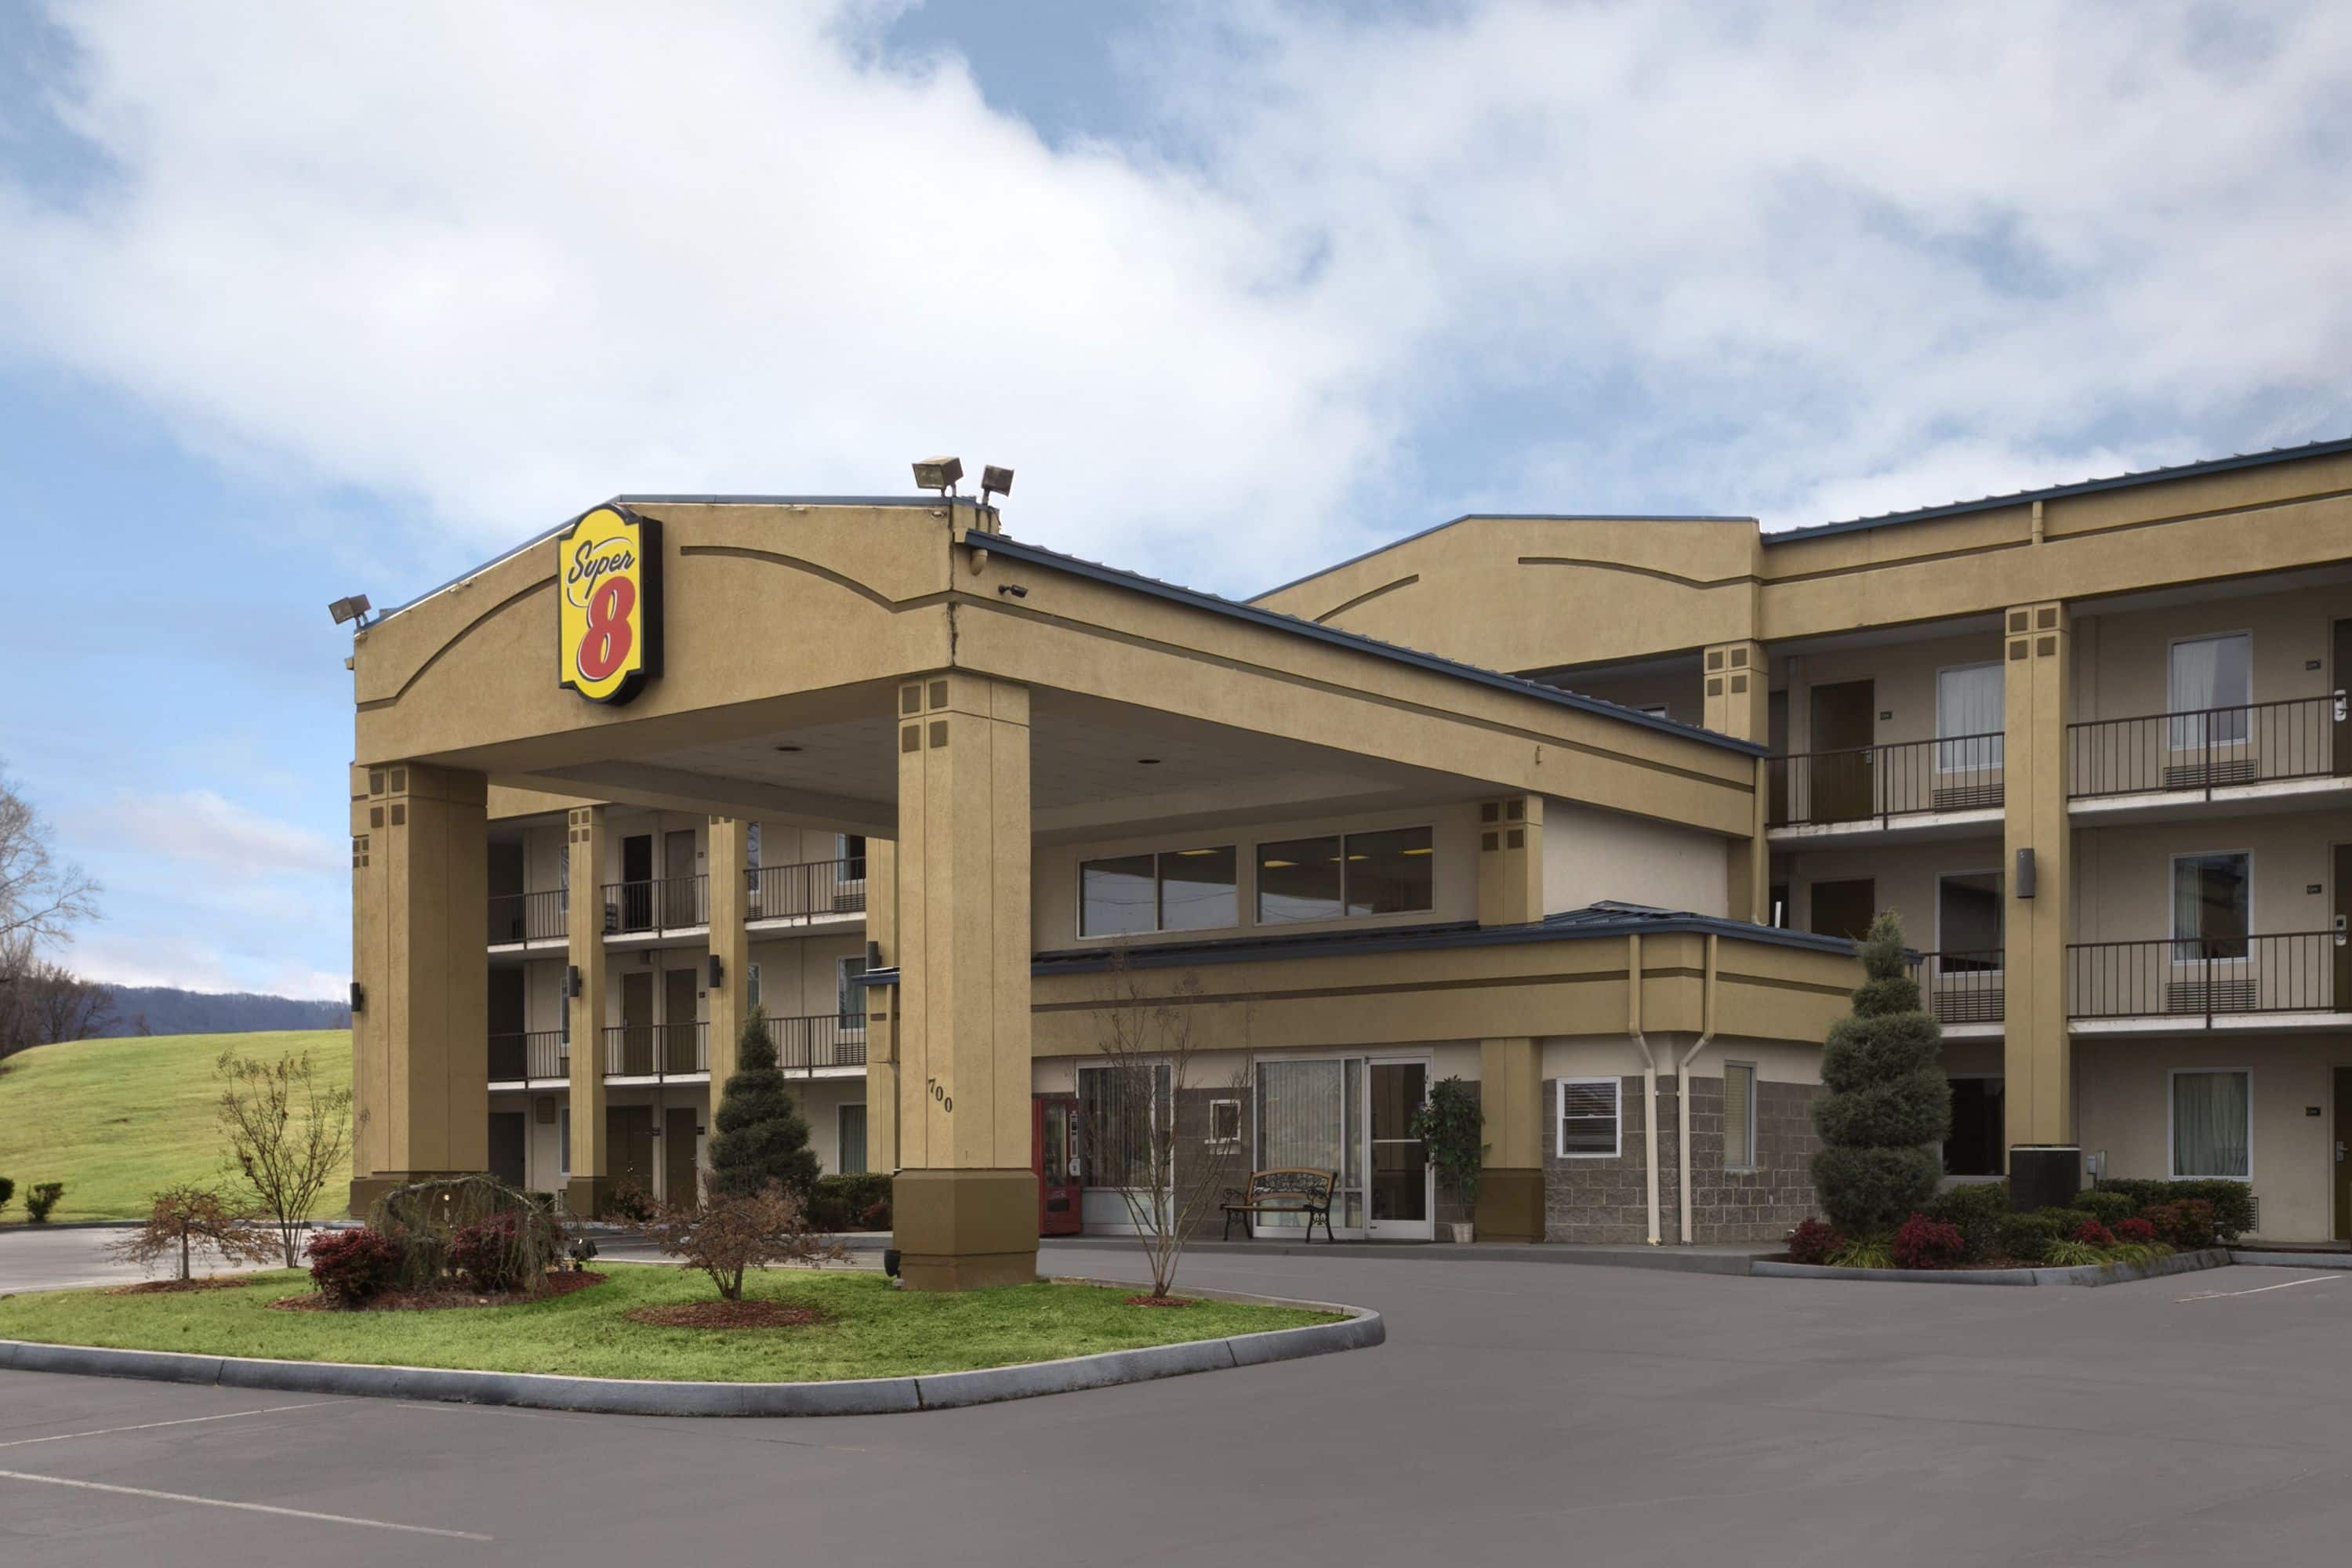 Super 8 By Wyndham Kingsport Kingsport Tn Hotels